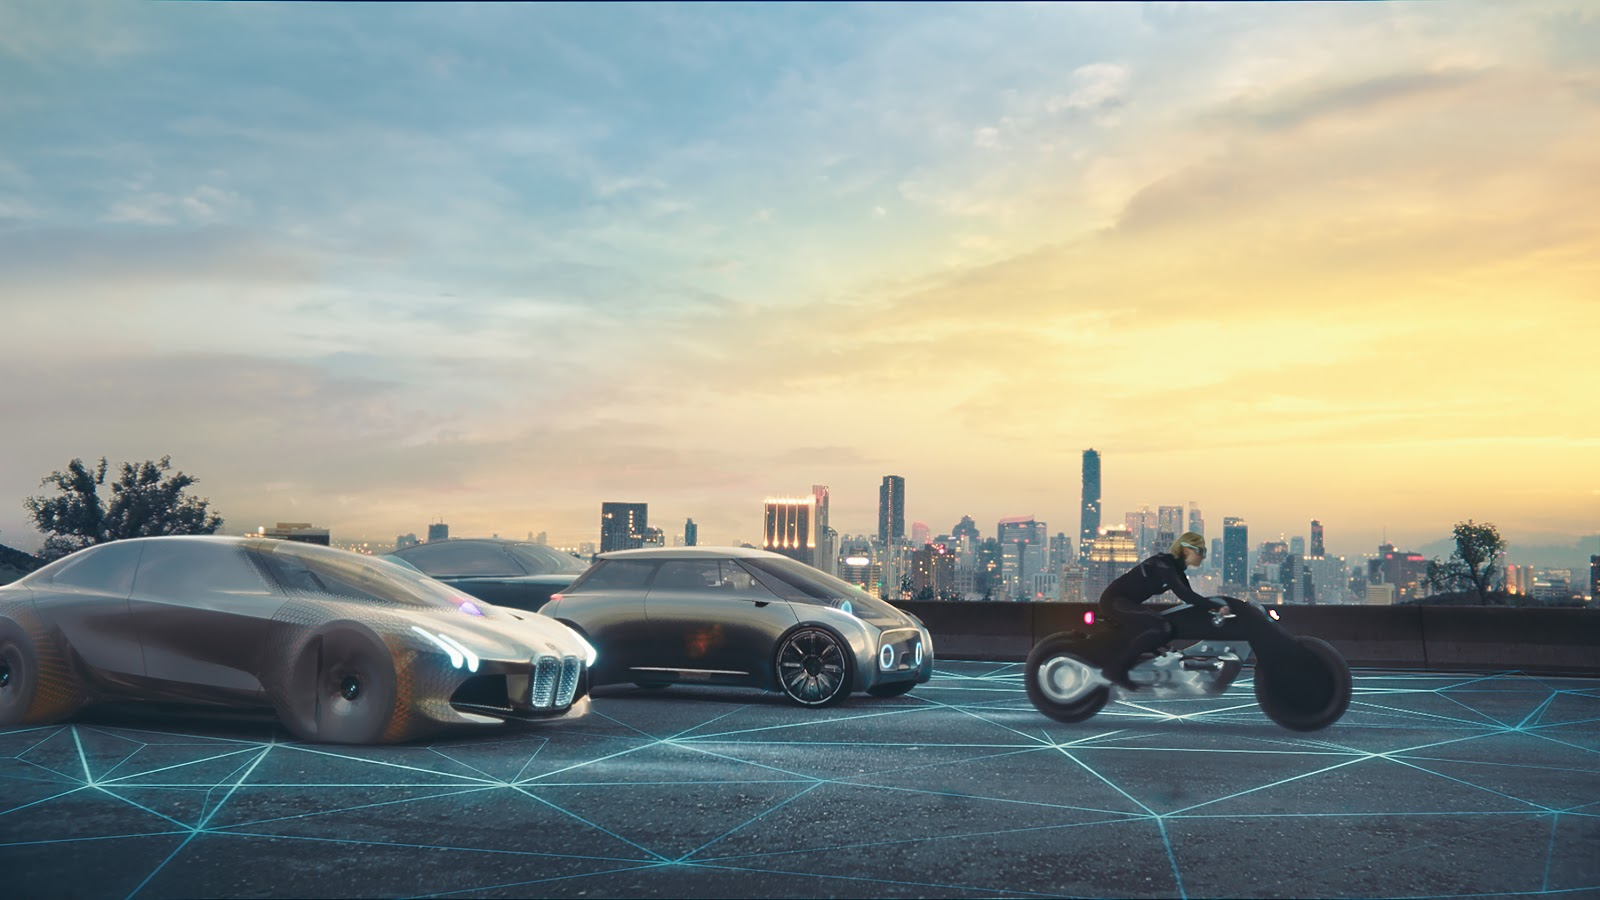 The Next 100 Years >> Bmw Launches Online A New Era Film Revisiting The Next 100